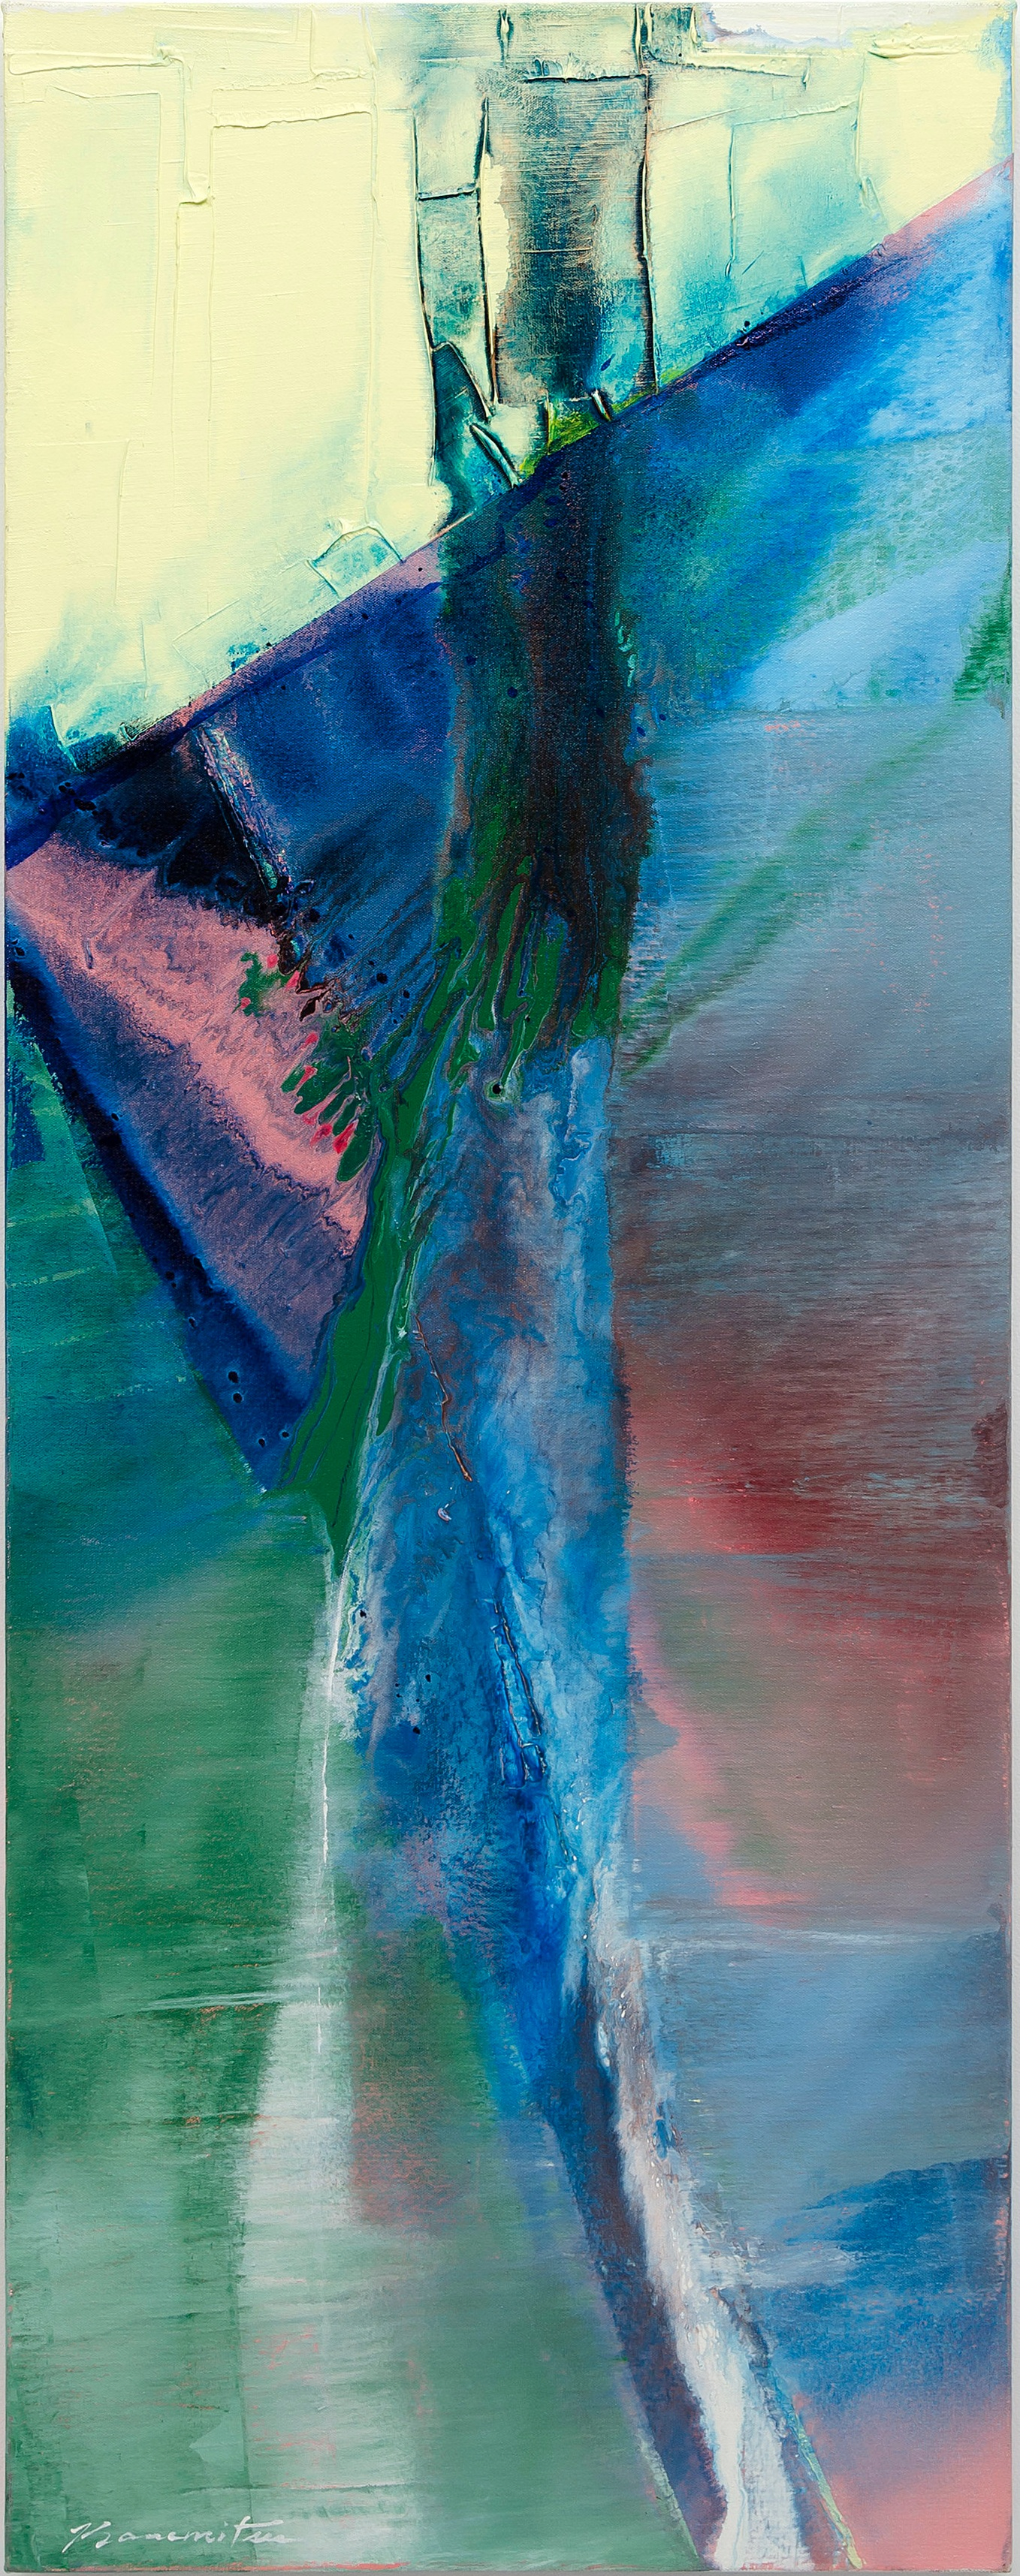 Pacific Series #77-88 , 1988 acrylic on canvas 50 x 19 inches; 127 x 48.3 centimeters